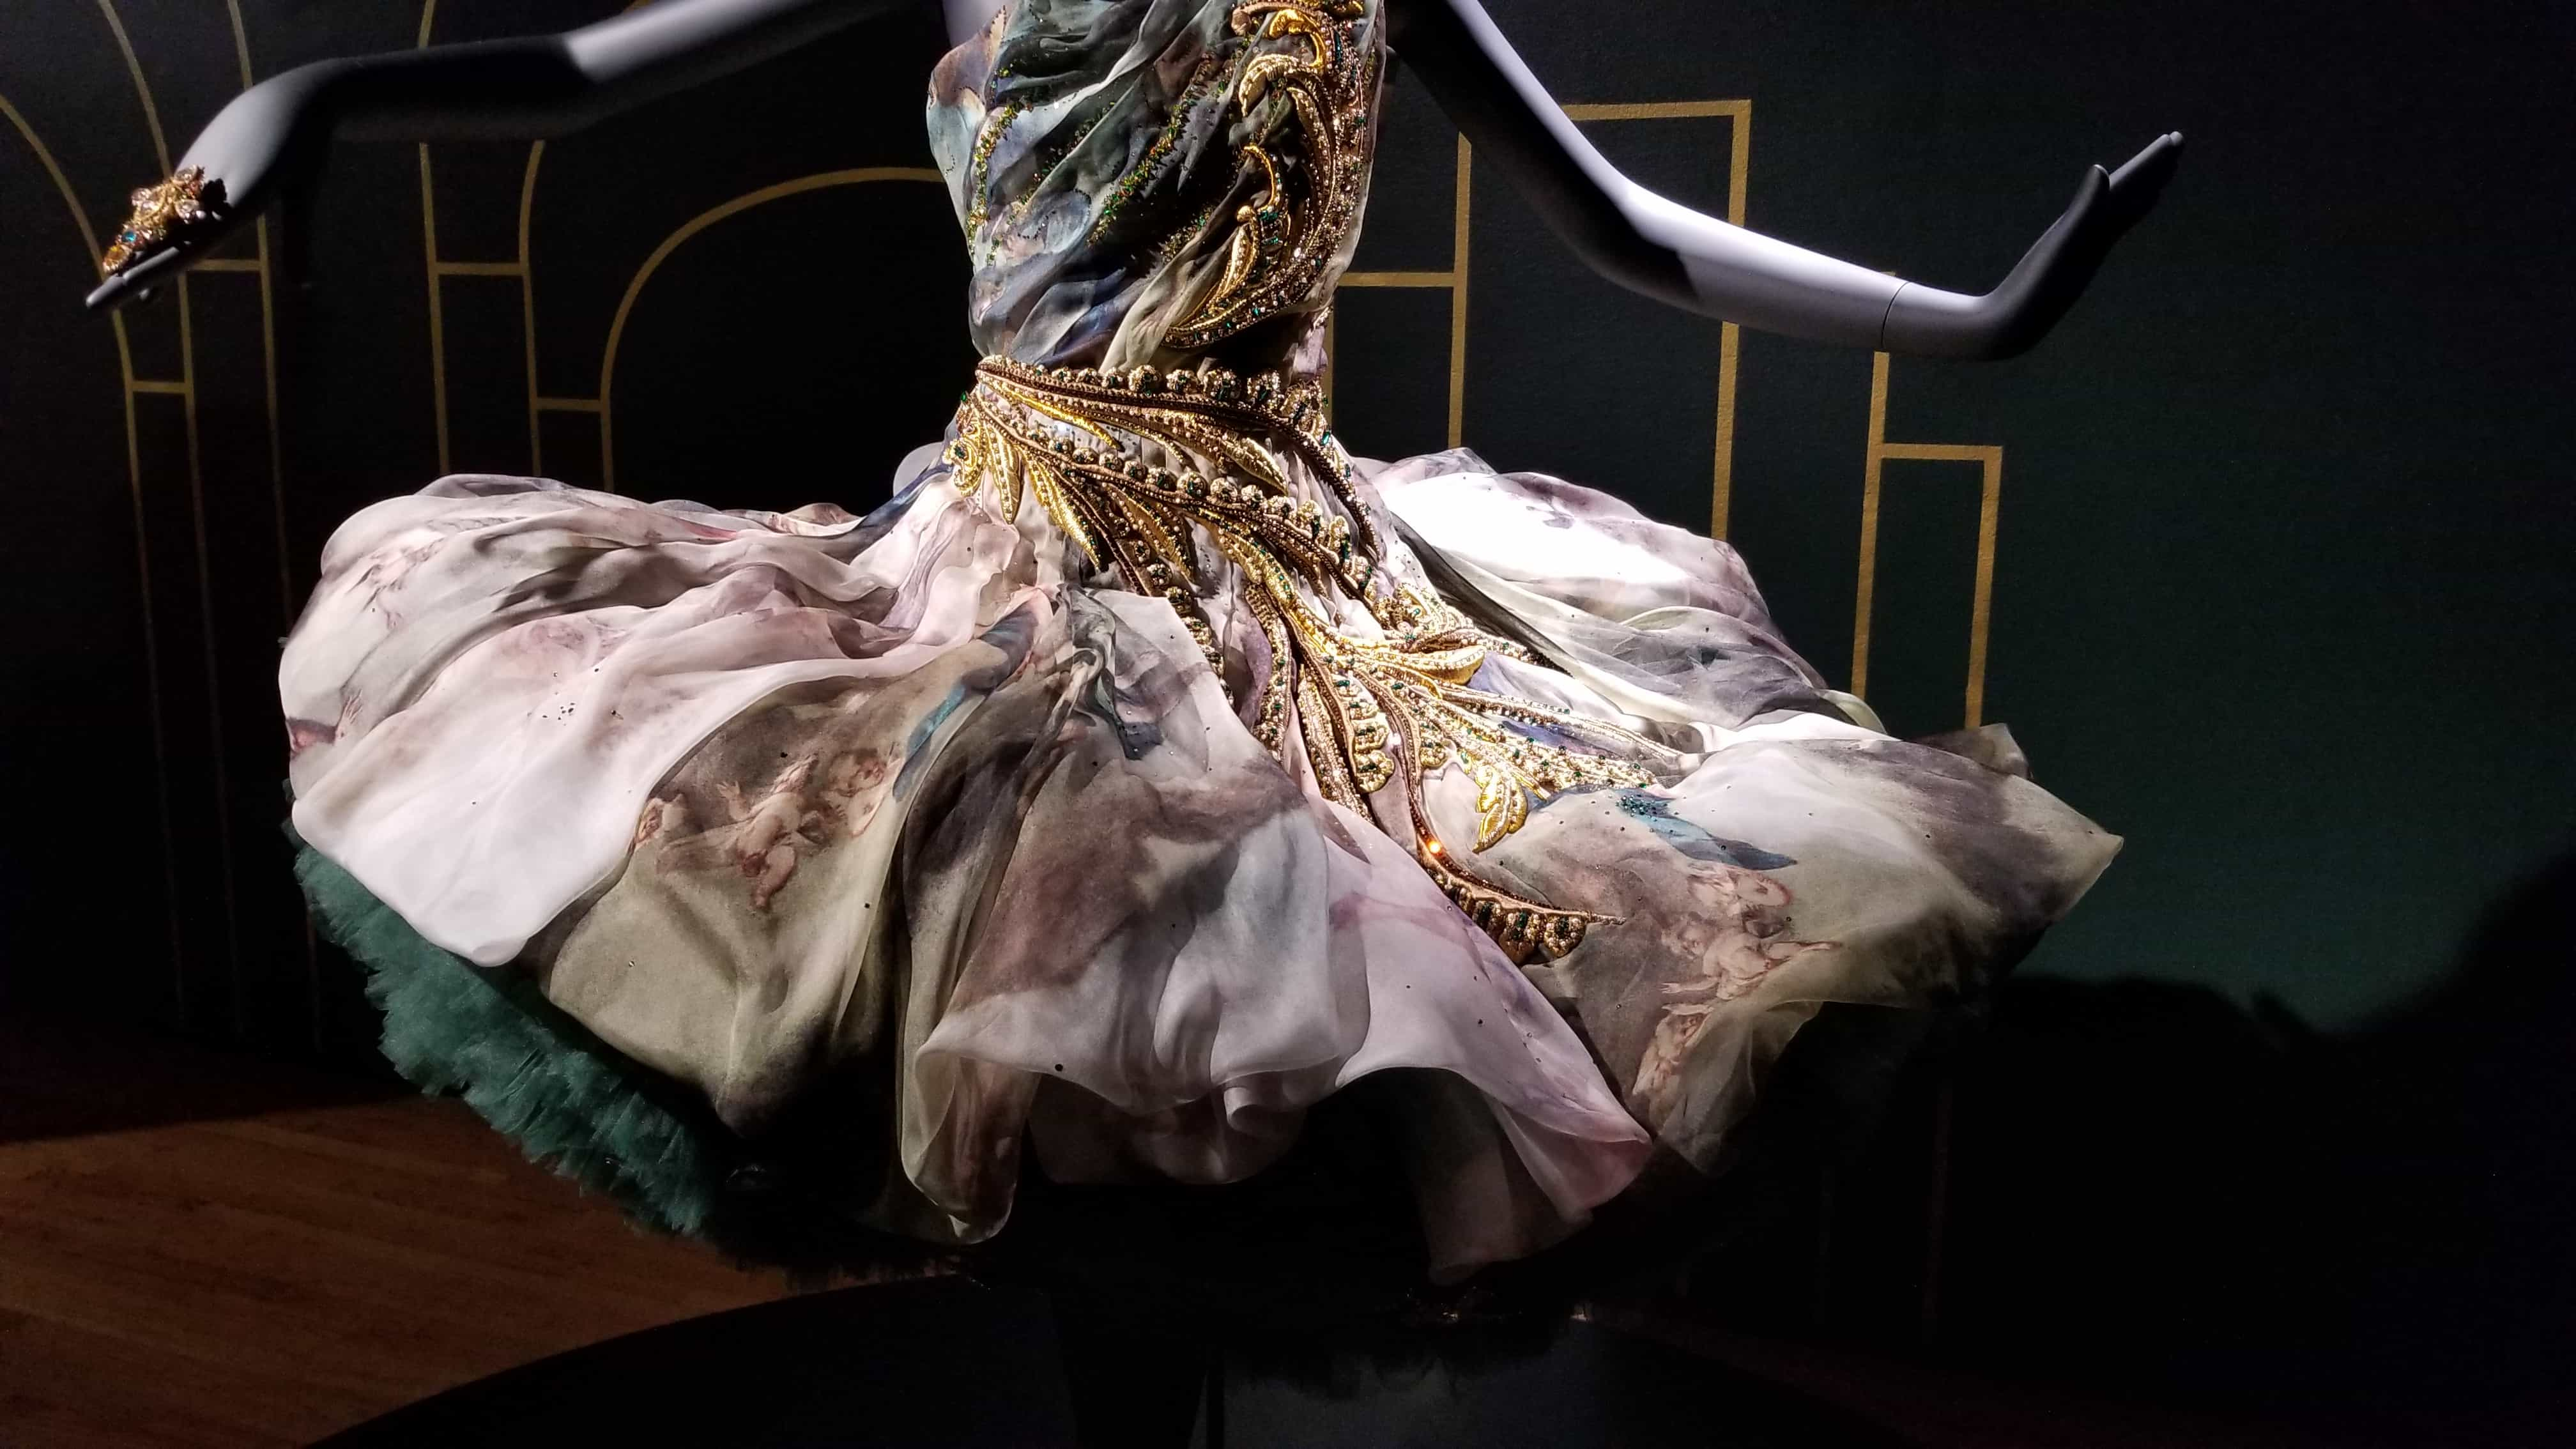 Helen Siwak, EcoLuxLuv, Couture Beyond, Guo Pei, VAG, Haute Couture, Exhibition, Vancouver, BC, Vancity, YVR, BC, luxury lifestyle, haute couture, couture designs, chinese couture